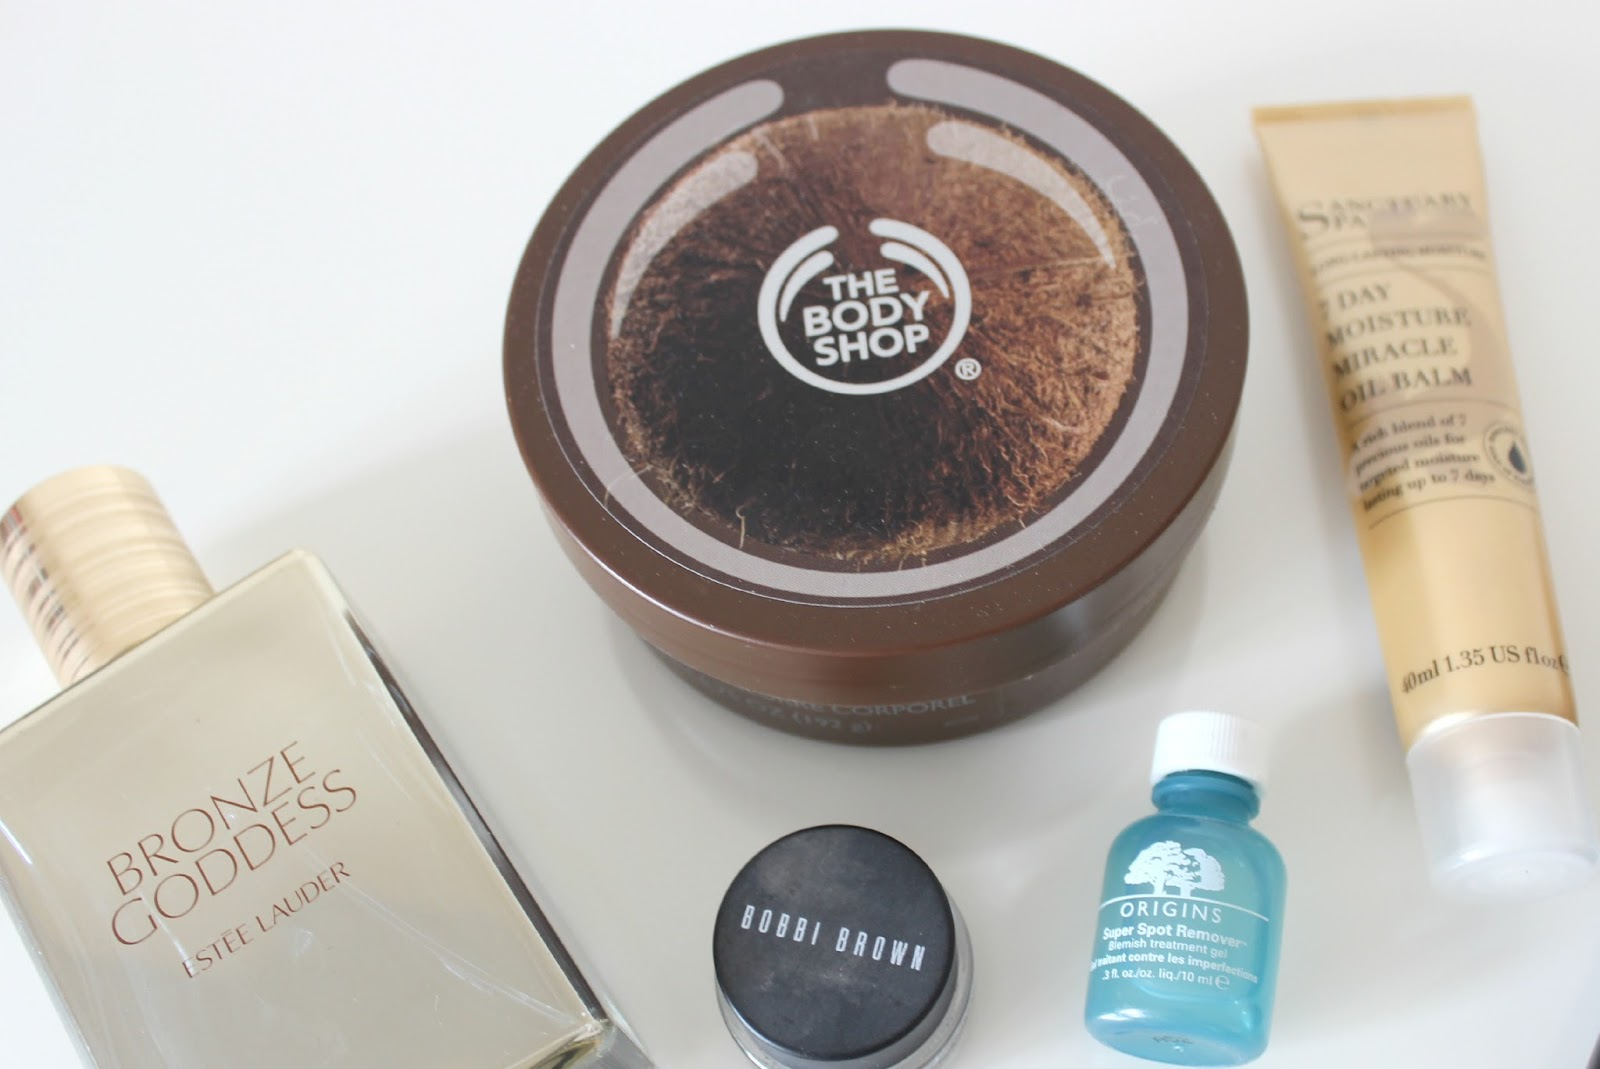 A picture of The Body Shop Coconut Body Butter, Estee Lauder Bronze Goddess and Sanctuary Spa 7 Day Moisture Miracle Oil Balm